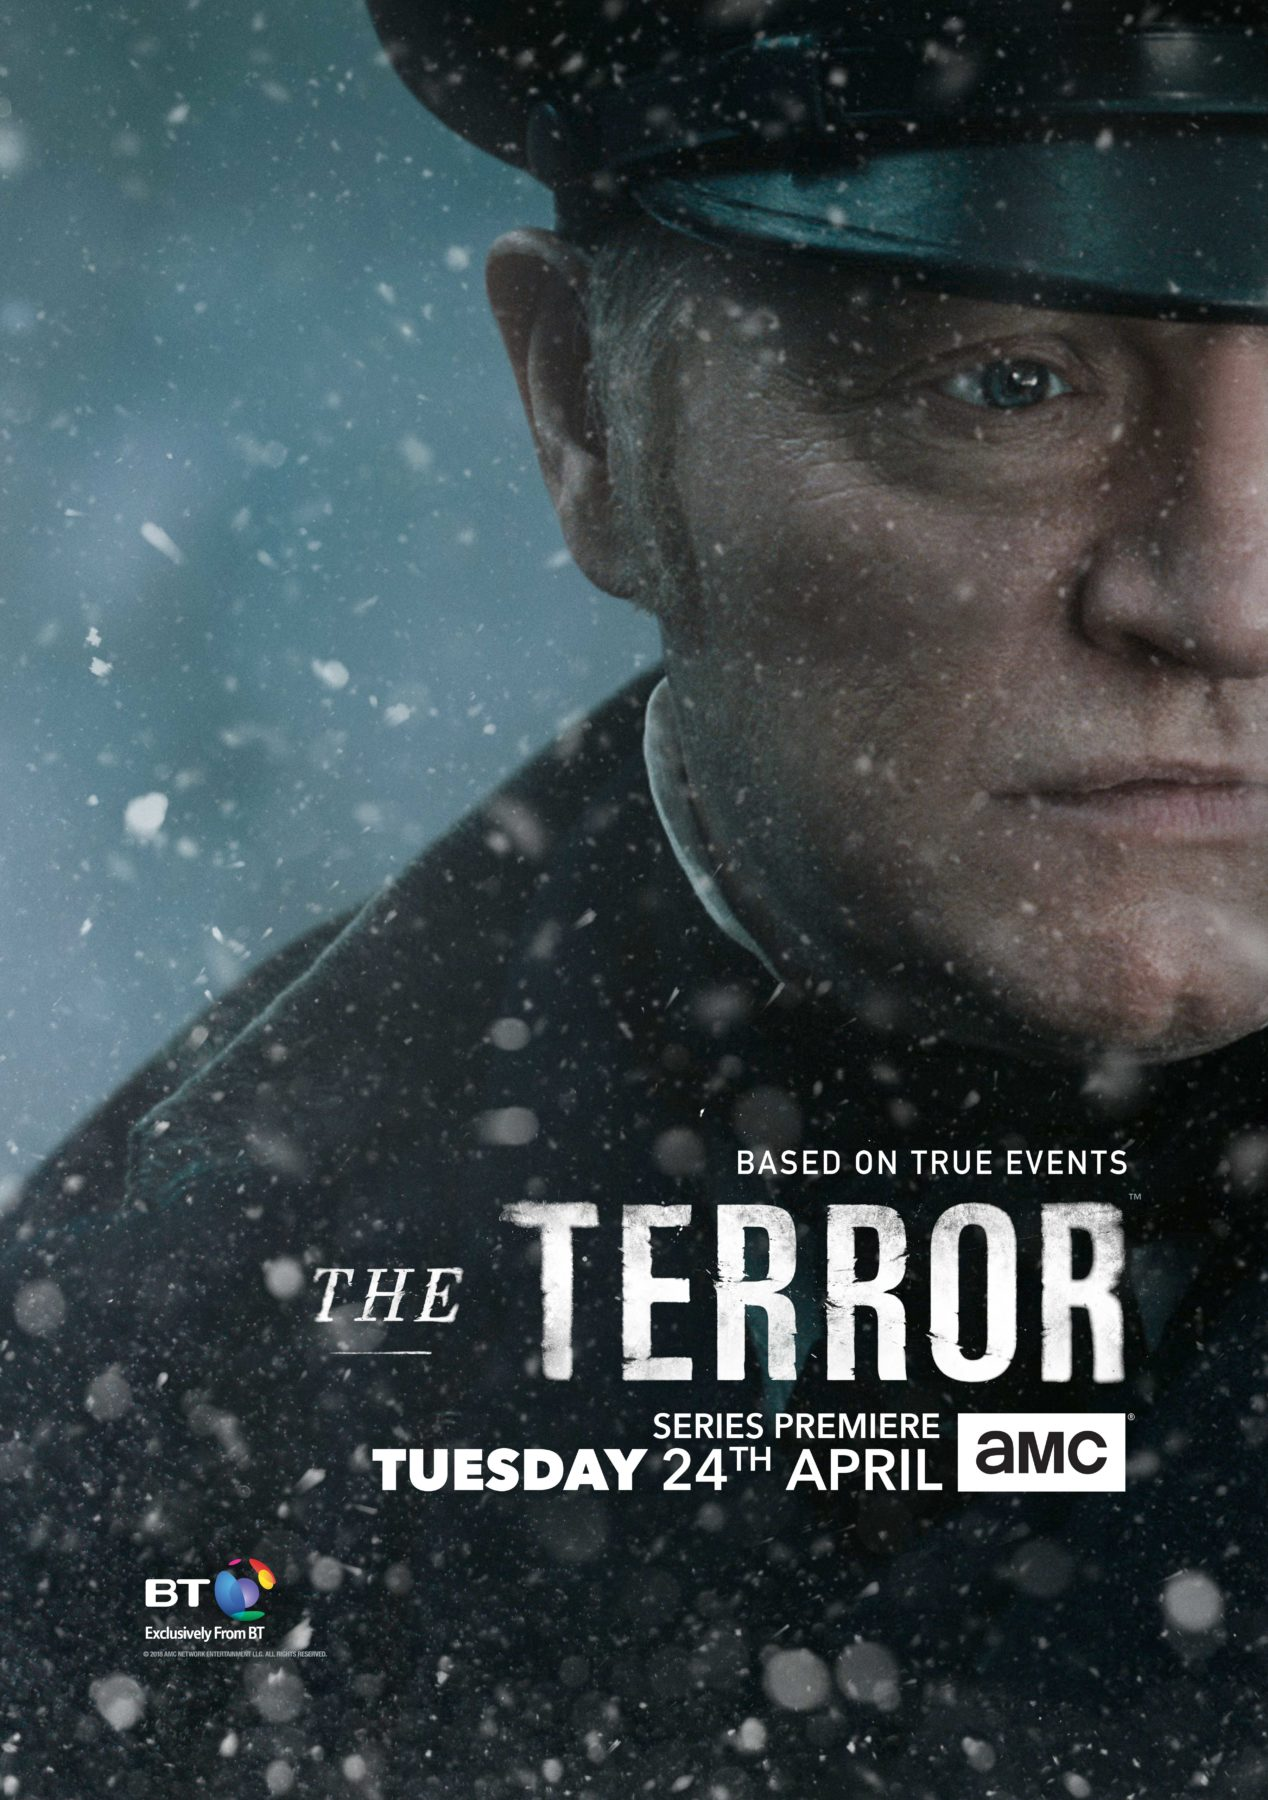 The Terror è la nuova angoscia seriale disponibile su Amazon | Collater.al 6